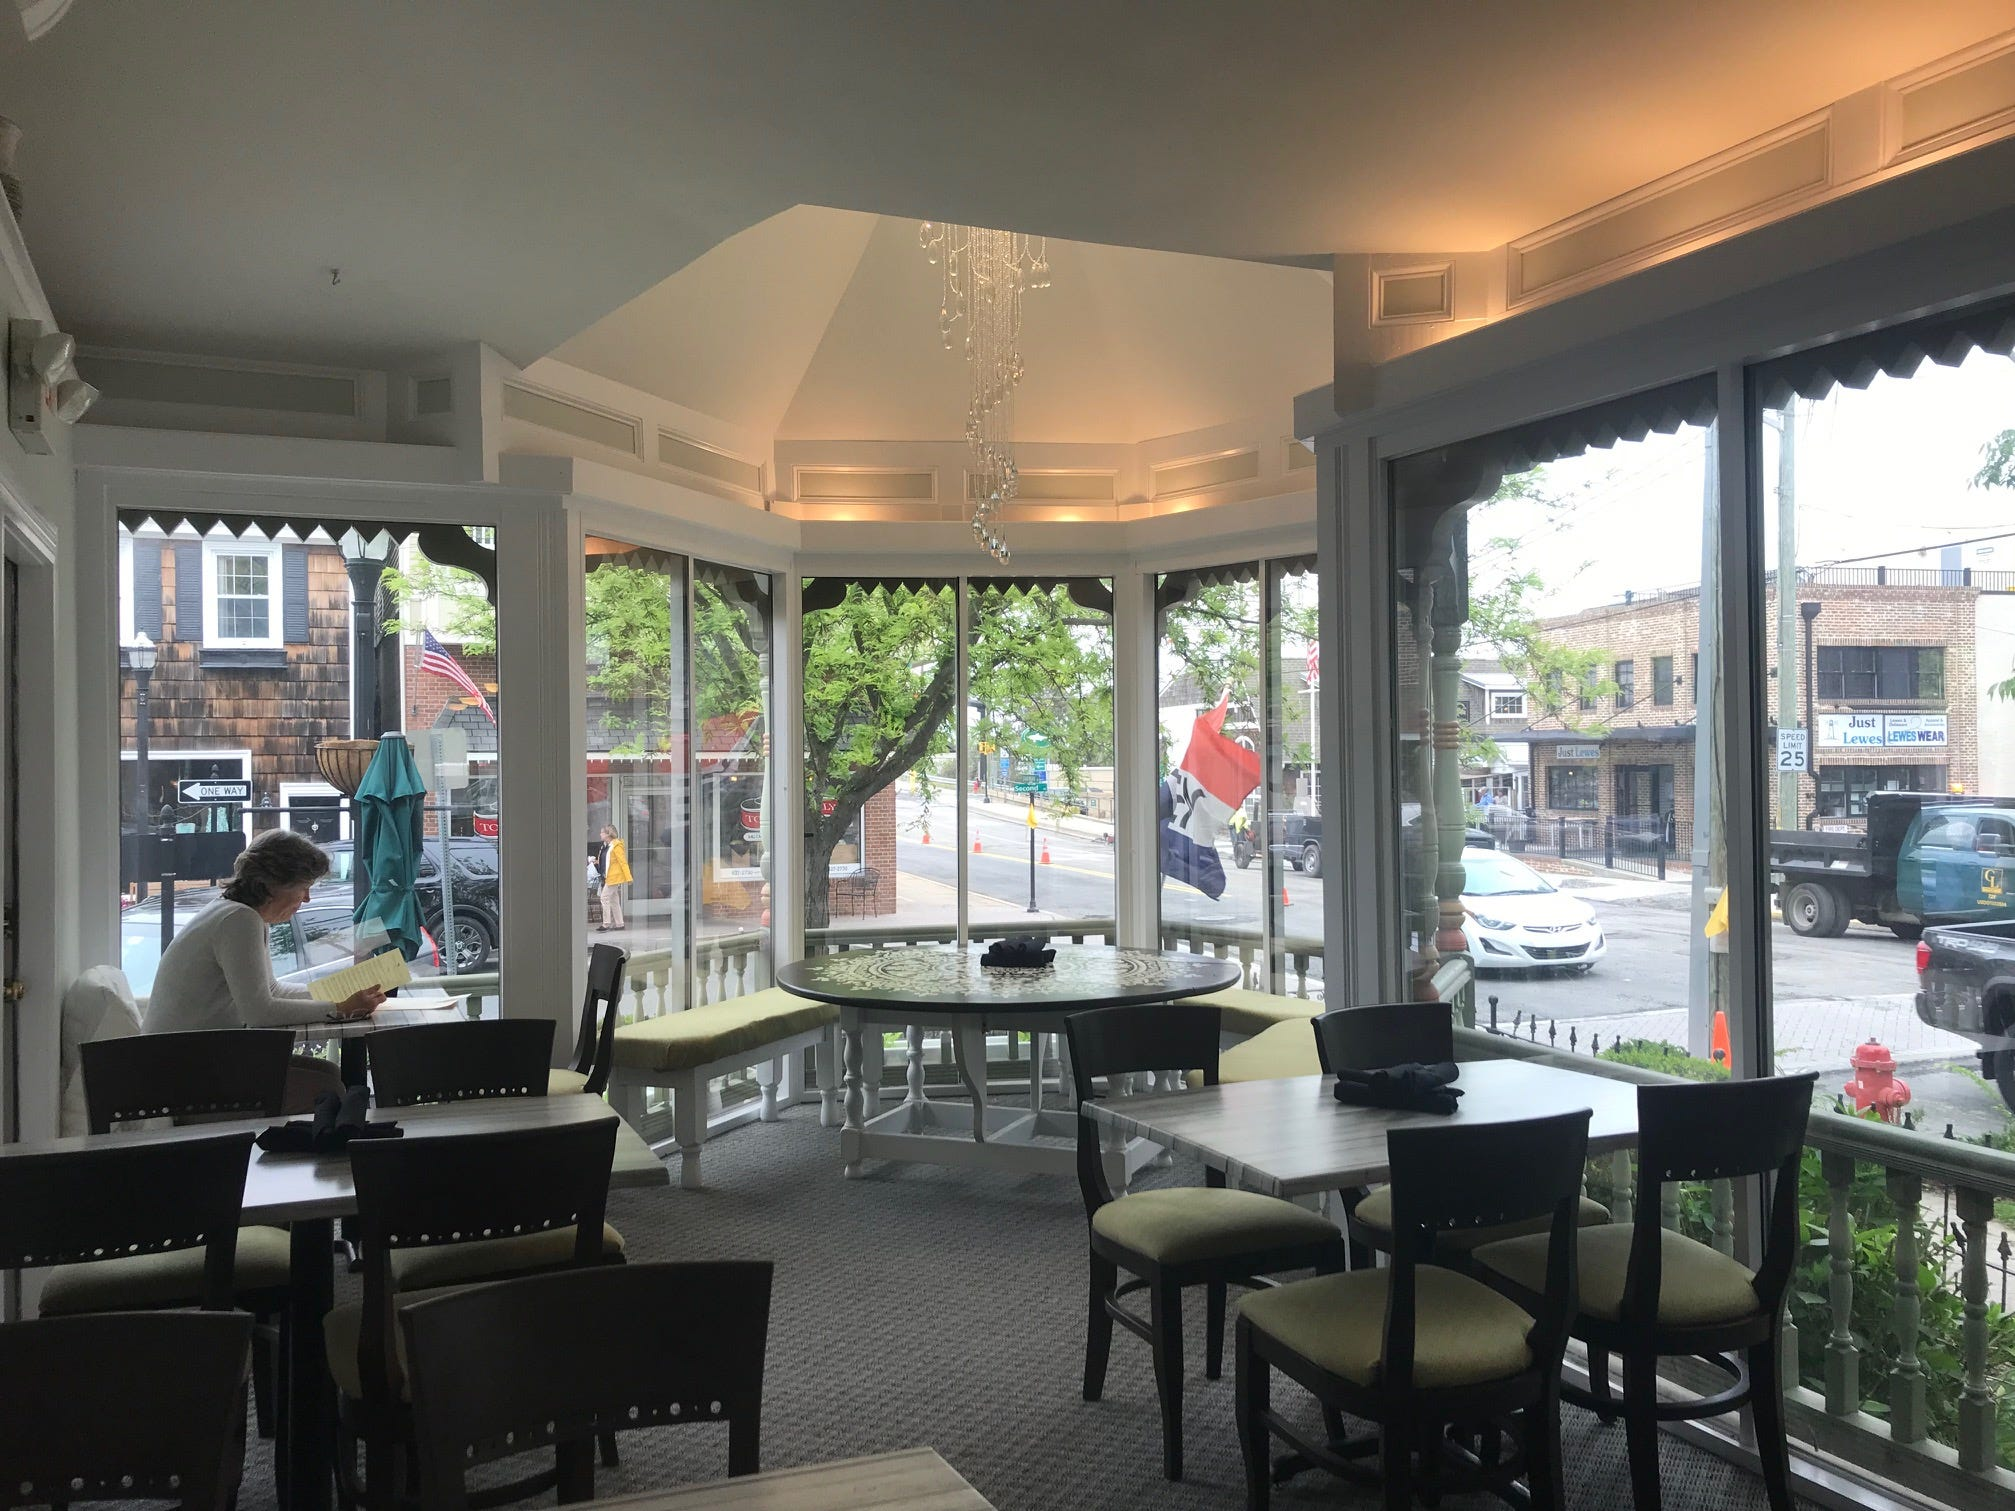 The Buttery in Lewes has been renamed 2nd Street Tavern. It has a new look and new menu.